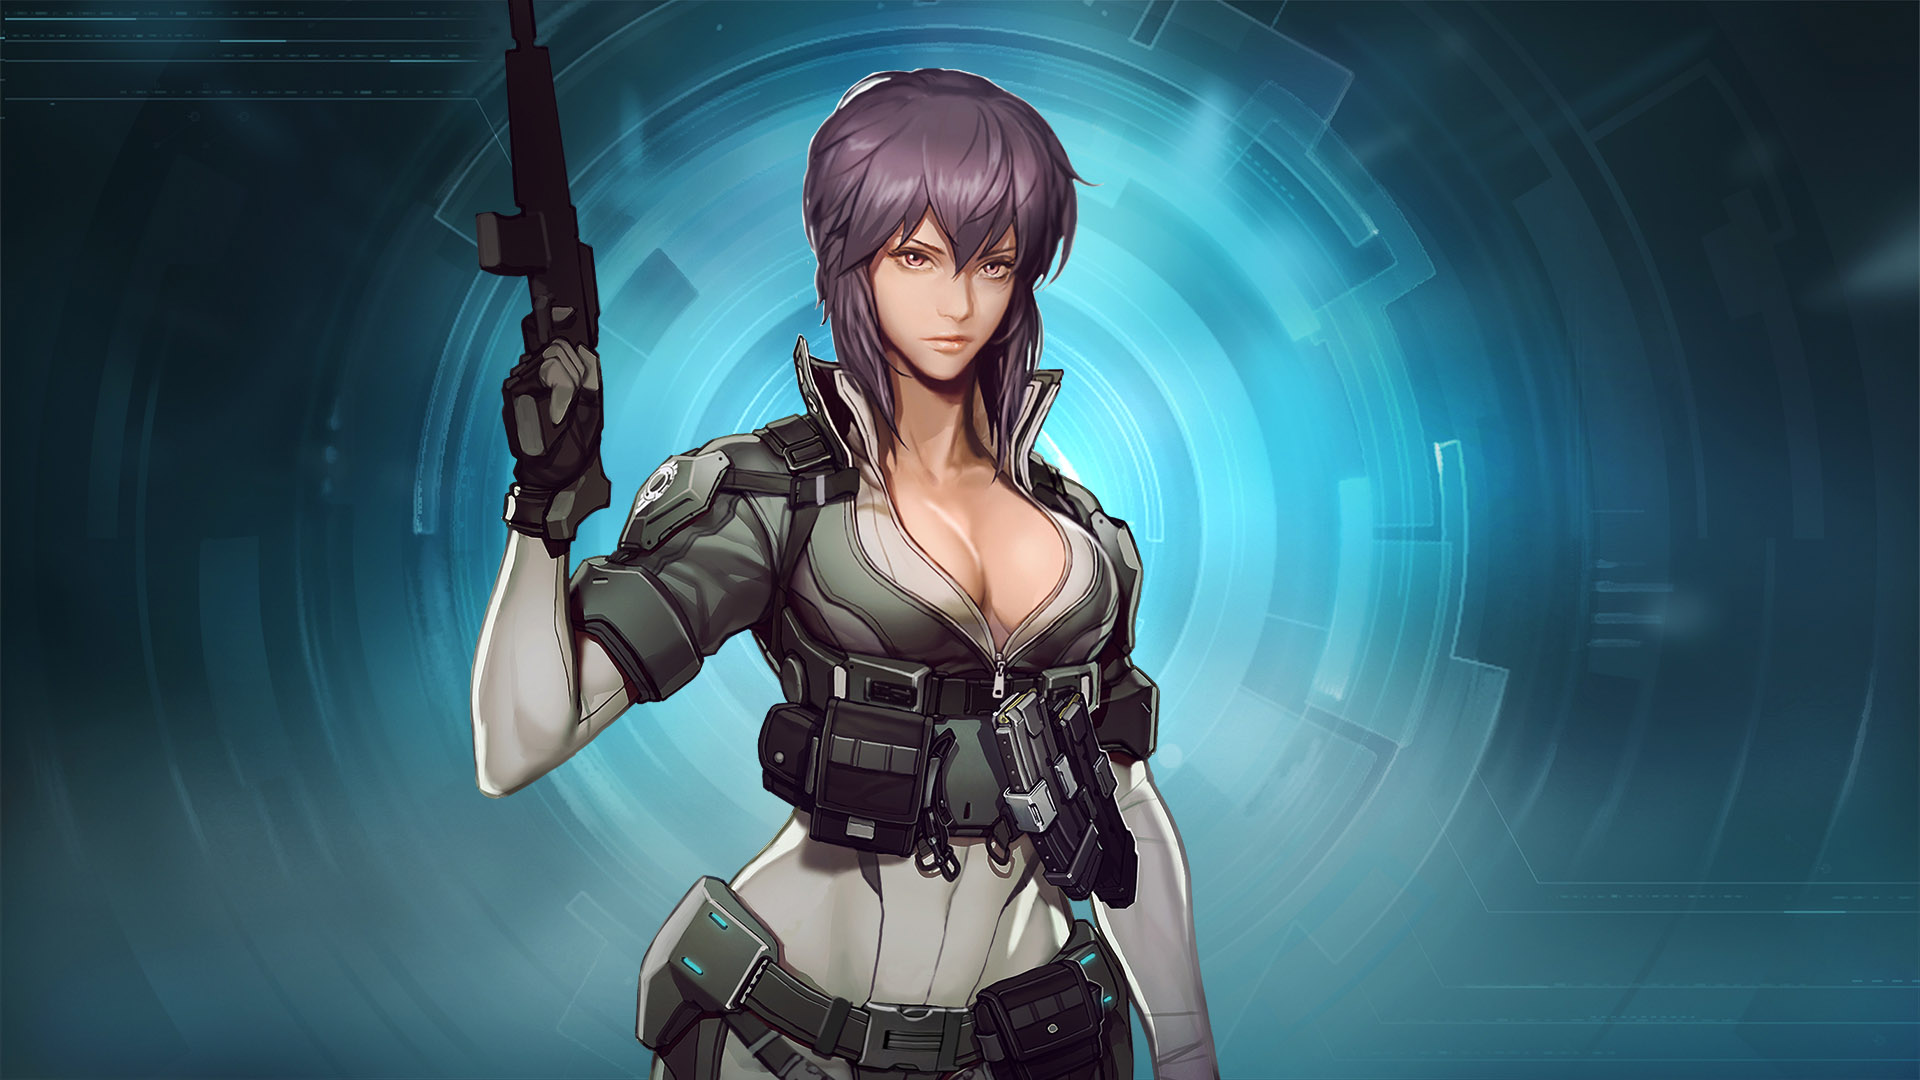 The Answer Is No Not At All Core Gameplay Of First Assault Online Relatively Simple Its A Team Based Shooter Where Main Mode Demolition